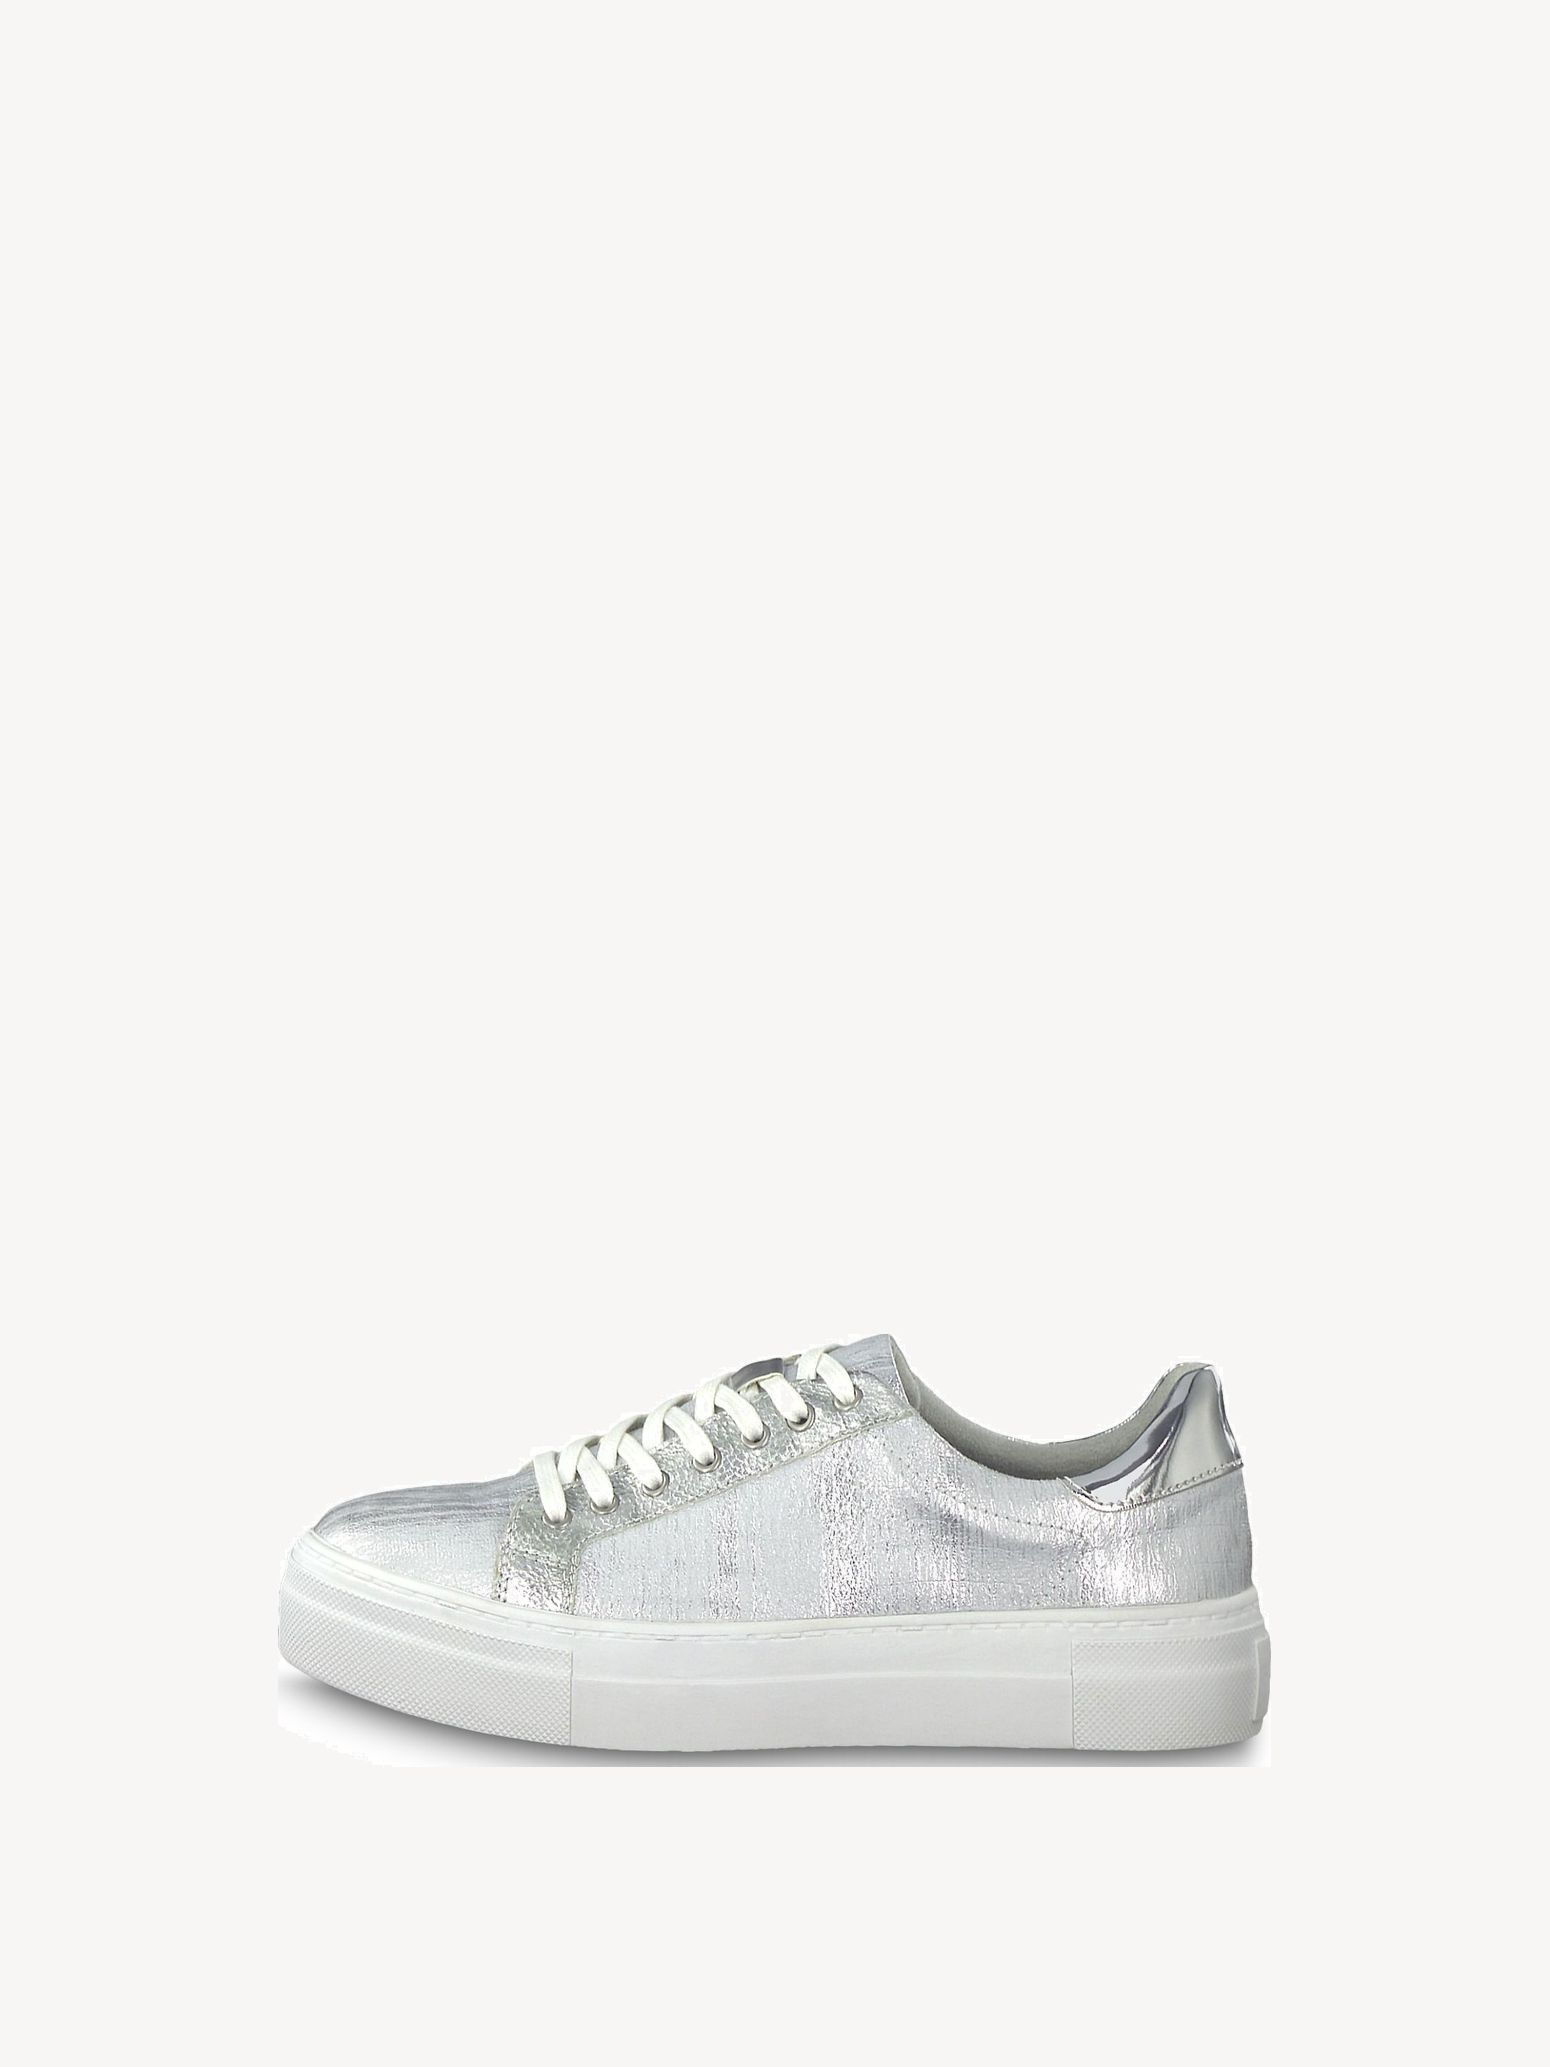 Tamaris Damen Sneaker Marras silver glam (Silber) | Modefreund Shop